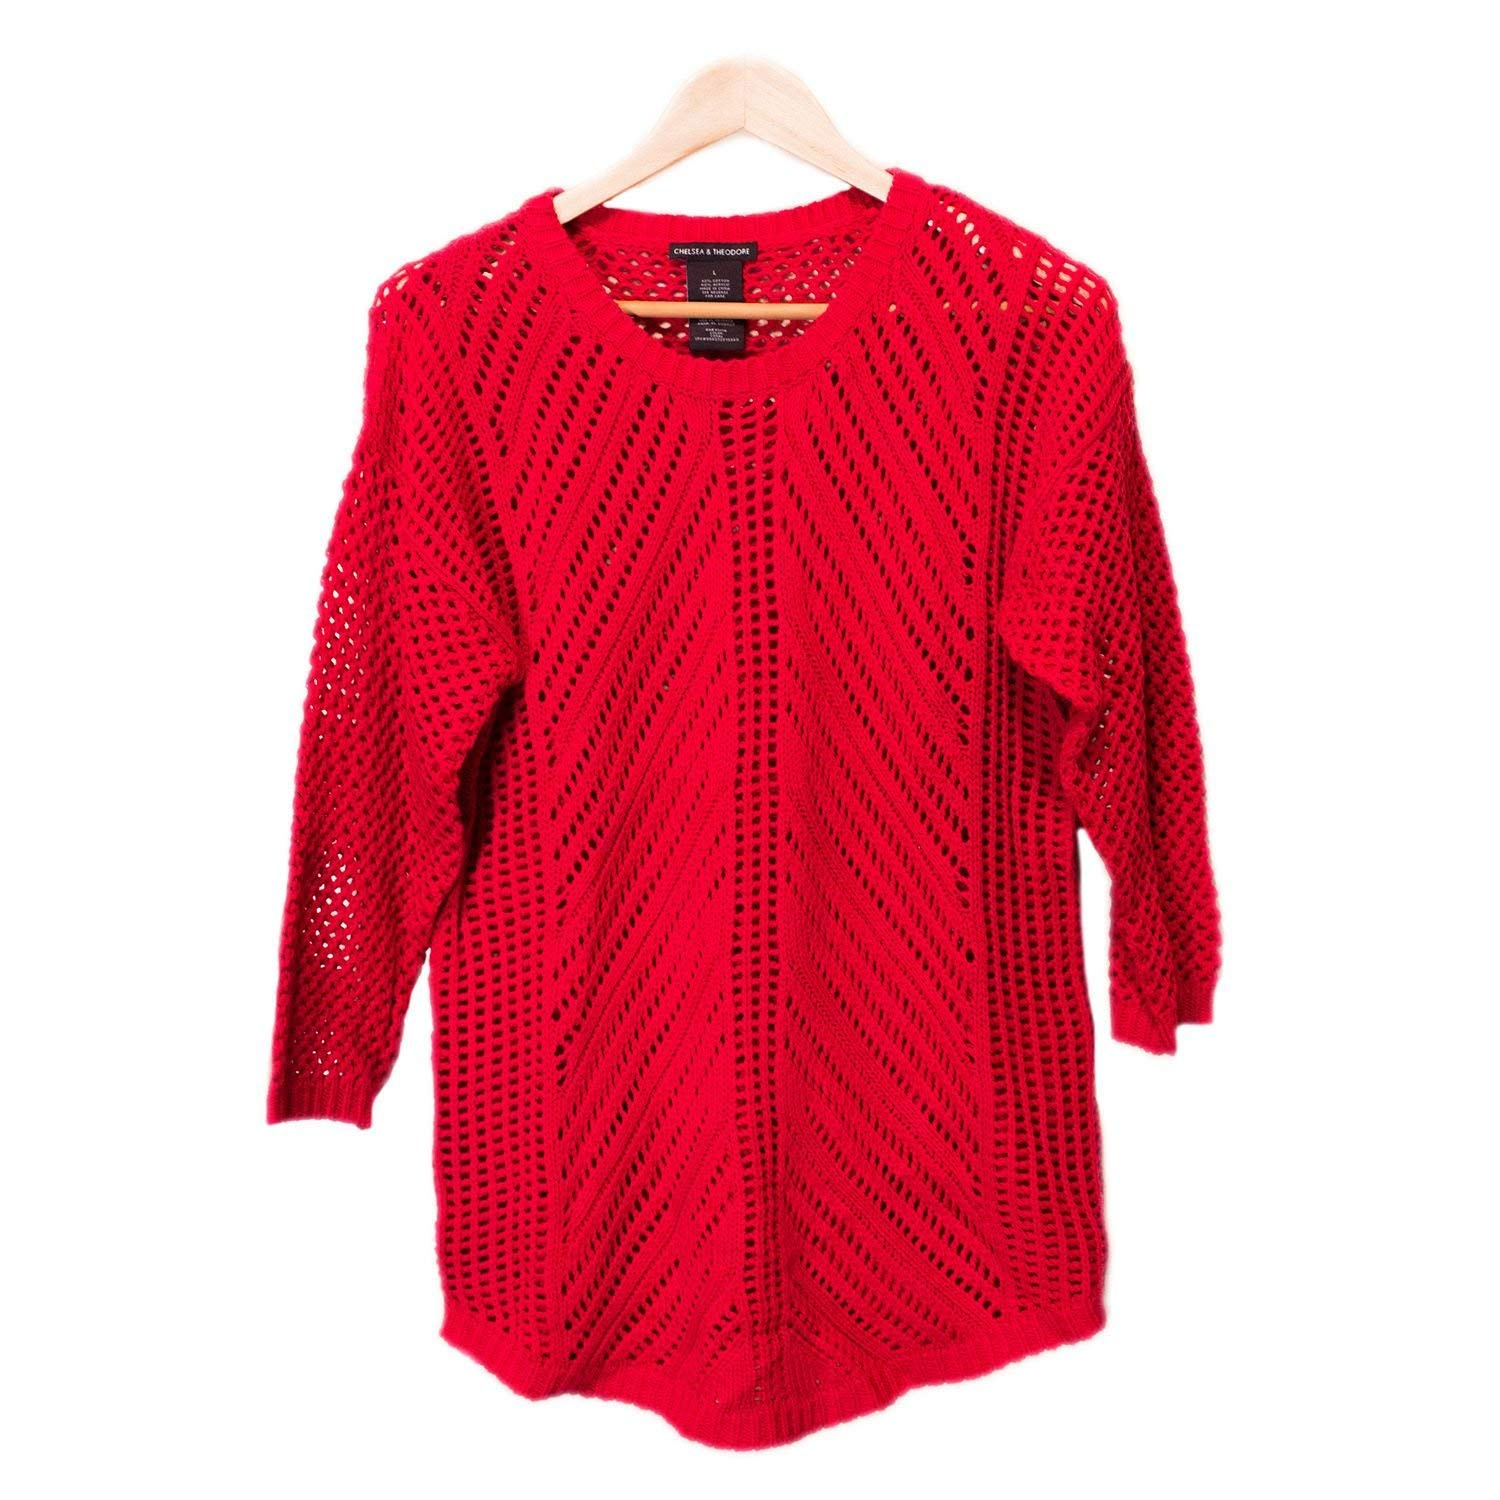 53776638a0ef Get Quotations · Chelsea   Theodore Womens 3 4 Sleeve Crochet Sweater